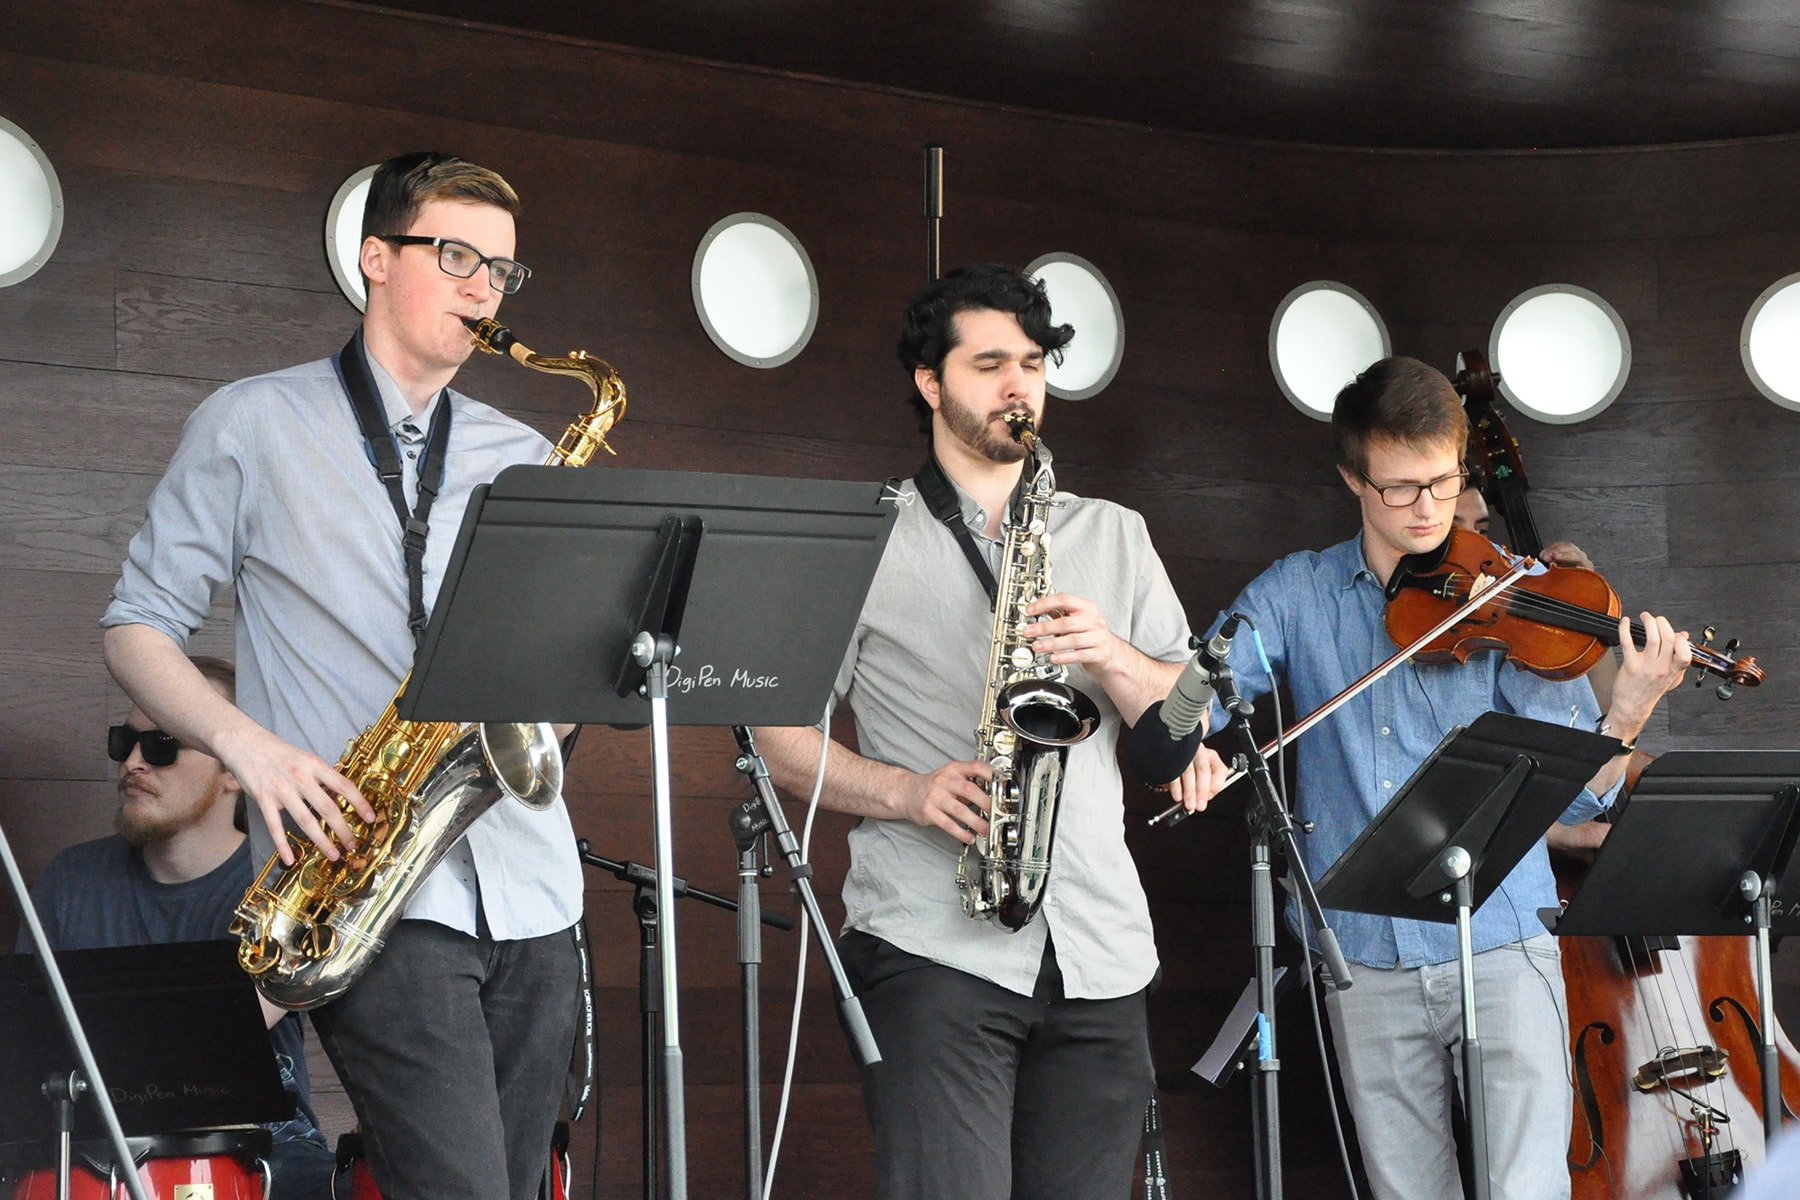 DigiPen Jazz Ensemble members playing saxophones, drums and violin on a portable stage